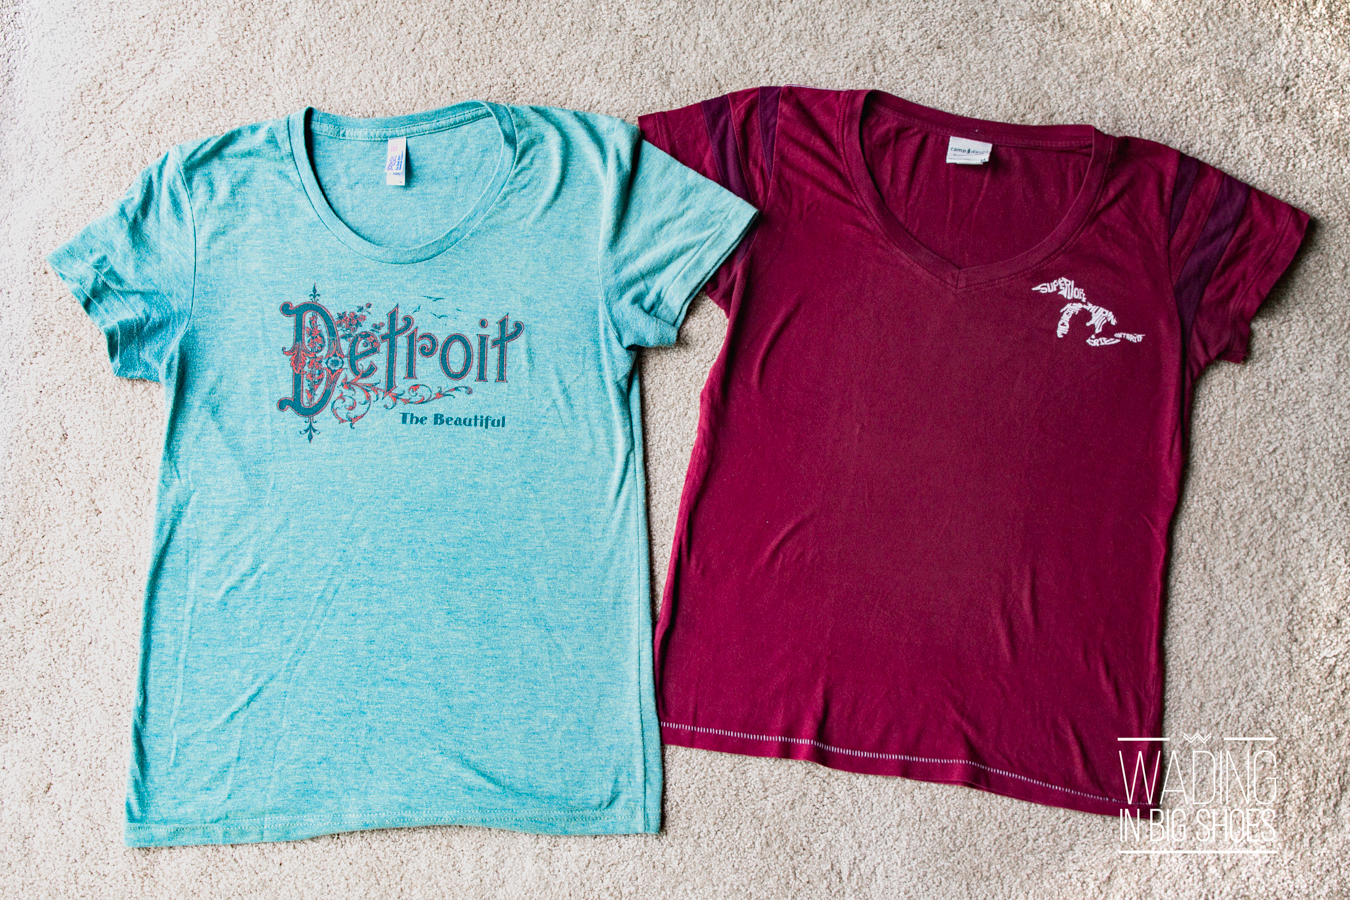 Wading in Big Shoes - Local Fashion Love: My (Mostly Detroit) Michigan T-Shirt Collection